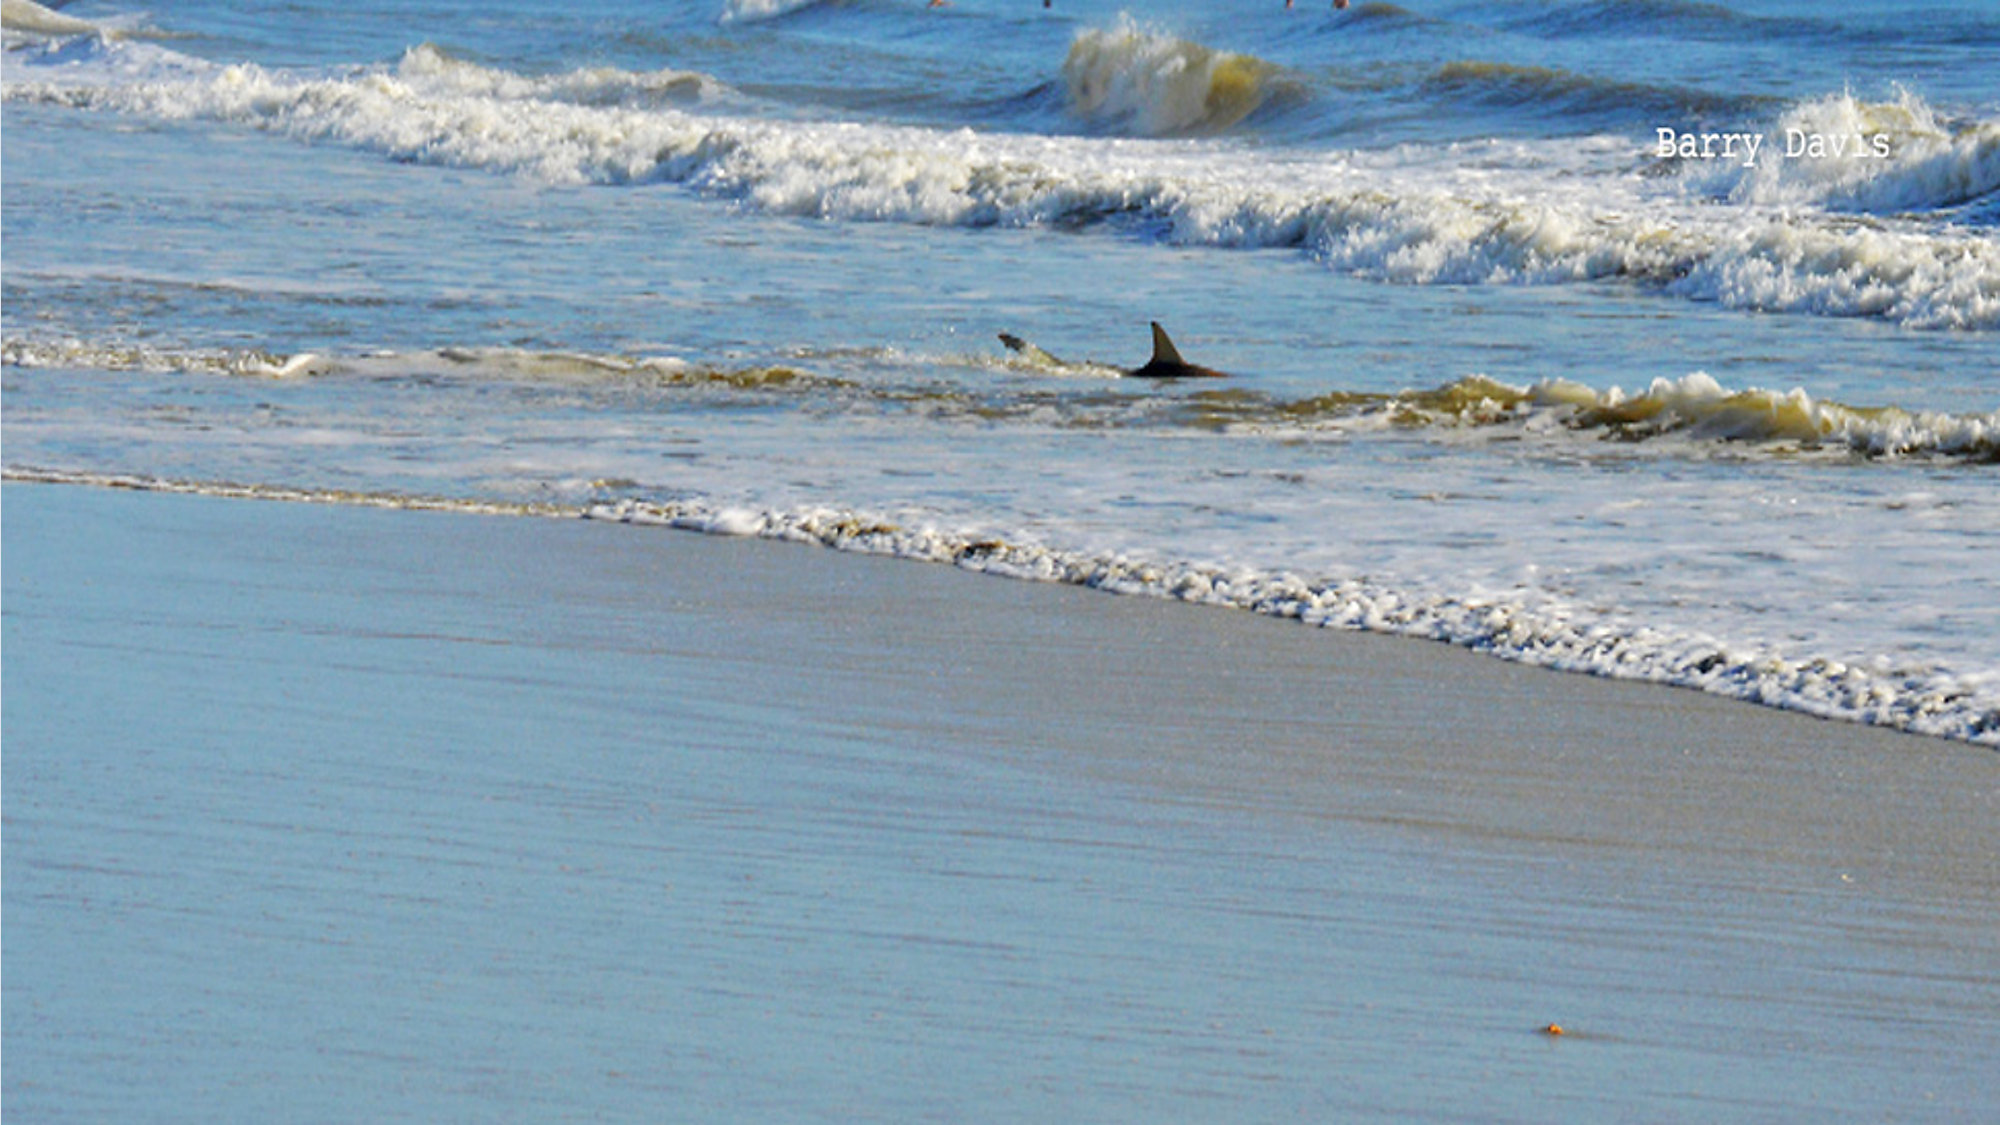 New Symrna Beach >> 3 Shark Bites Reported At New Smyrna Beach In Past 2 Weeks